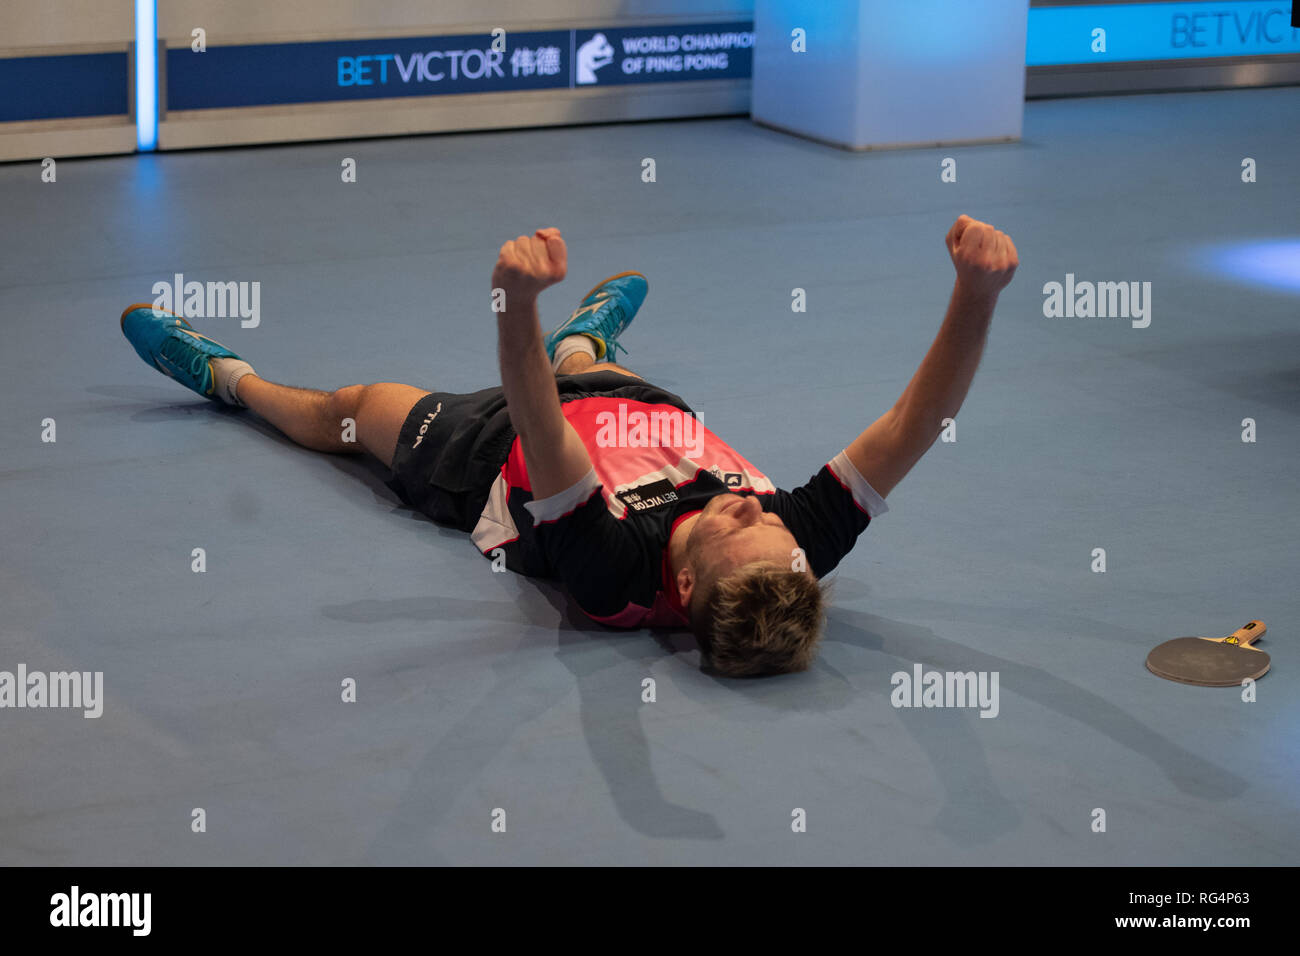 London, UK. 27th Jan, 2019. Andrew Baggaley (ENG) celebrates winning the Final during Betvictor World Championship of Ping Pong - 2019 tournament - last 16 knockout stage at Alexander Palace on Sunday, 27 January 2019. LONDON ENGLAND. (Editorial use only, license required for commercial use. No use in betting, games or a single club/league/player publications.) Credit: Taka G Wu/Alamy News Credit: Taka Wu/Alamy Live News - Stock Image